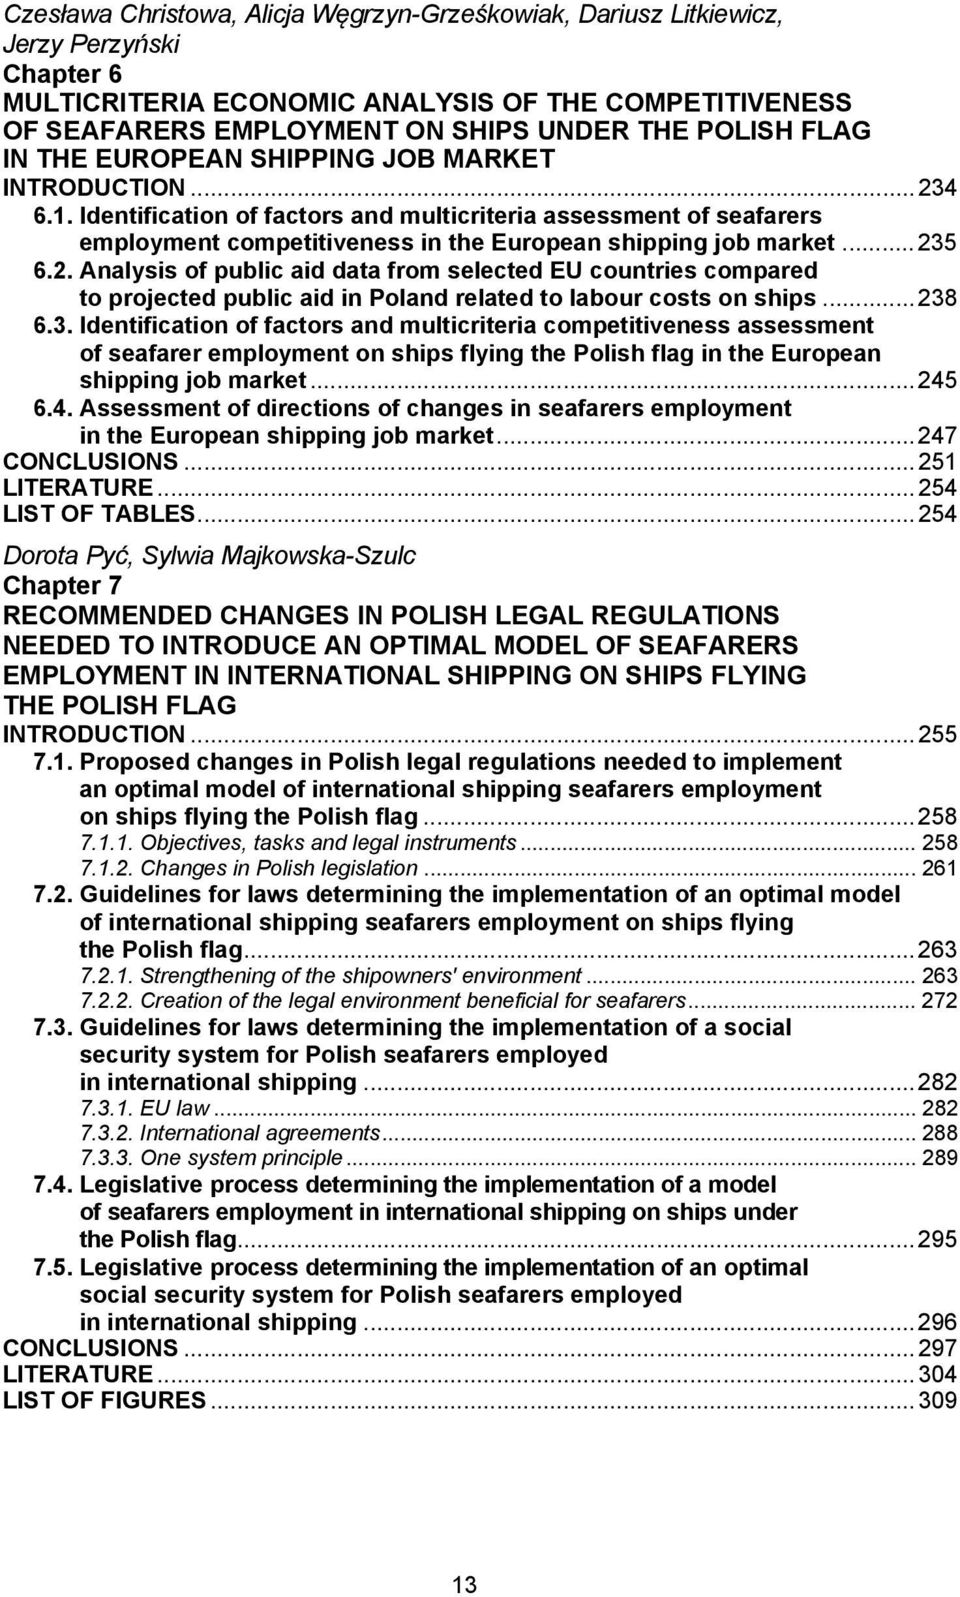 .. 235 6.2. Analysis of public aid data from selected EU countries compared to projected public aid in Poland related to labour costs on ships... 238 6.3. Identification of factors and multicriteria competitiveness assessment of seafarer employment on ships flying the Polish flag in the European shipping job market.